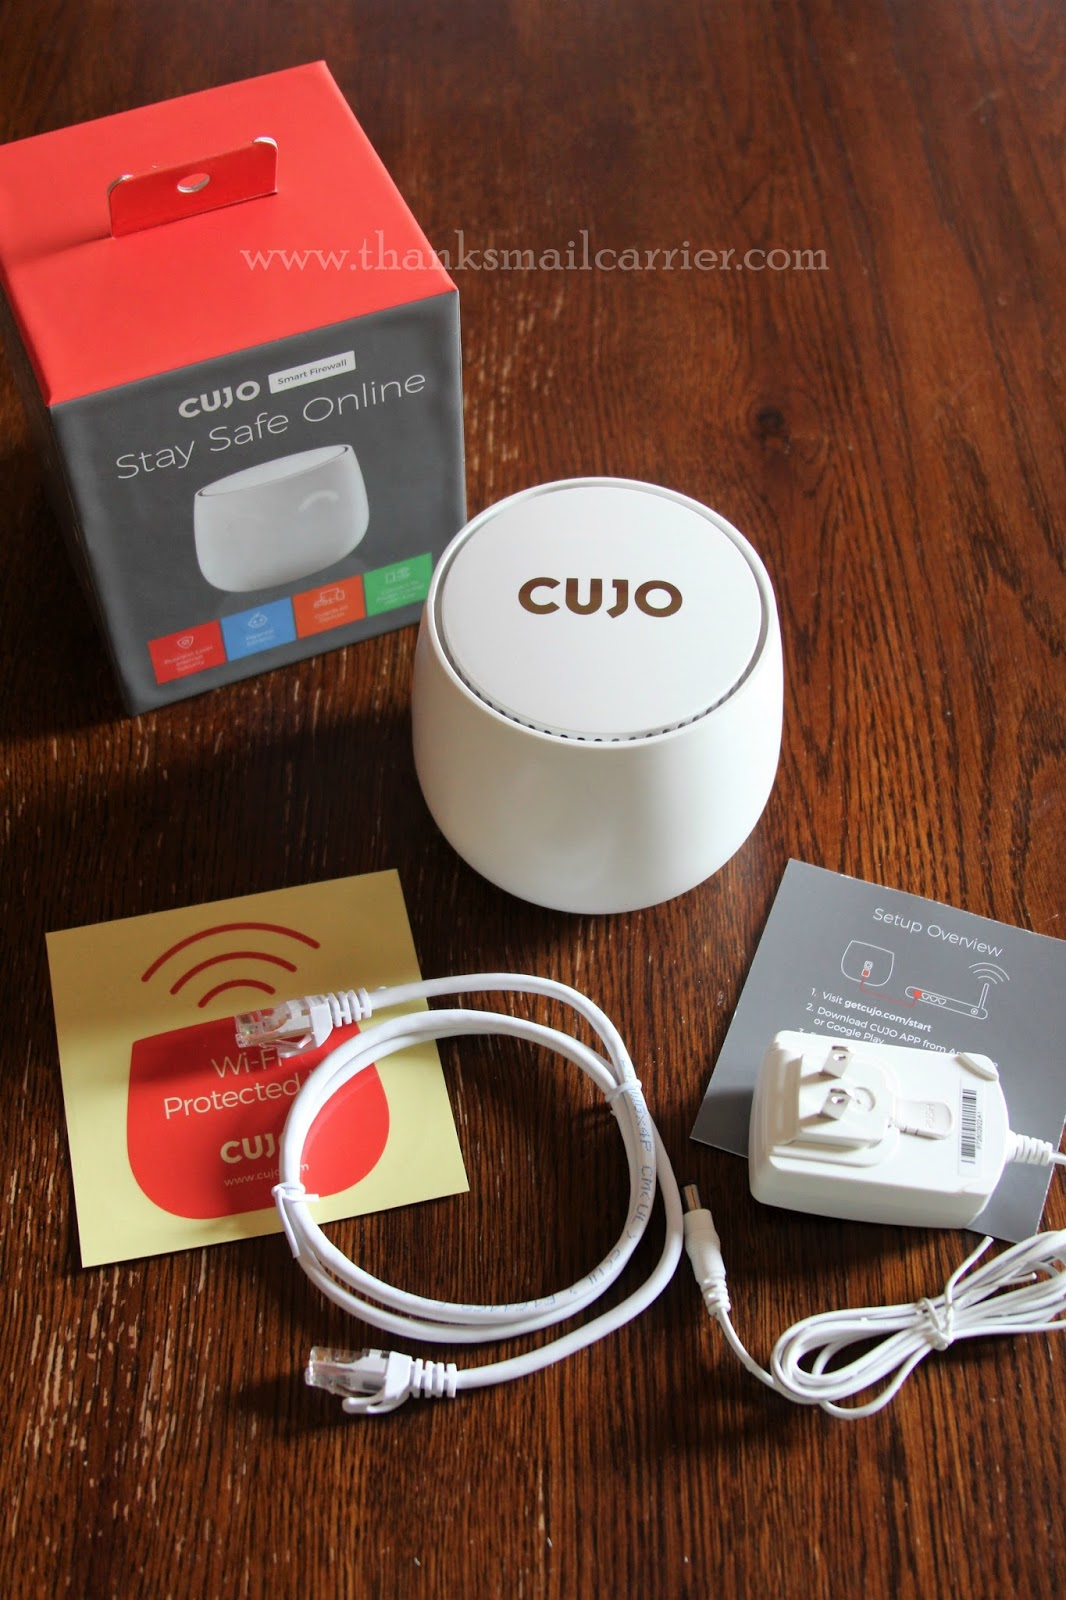 CUJO firewall review